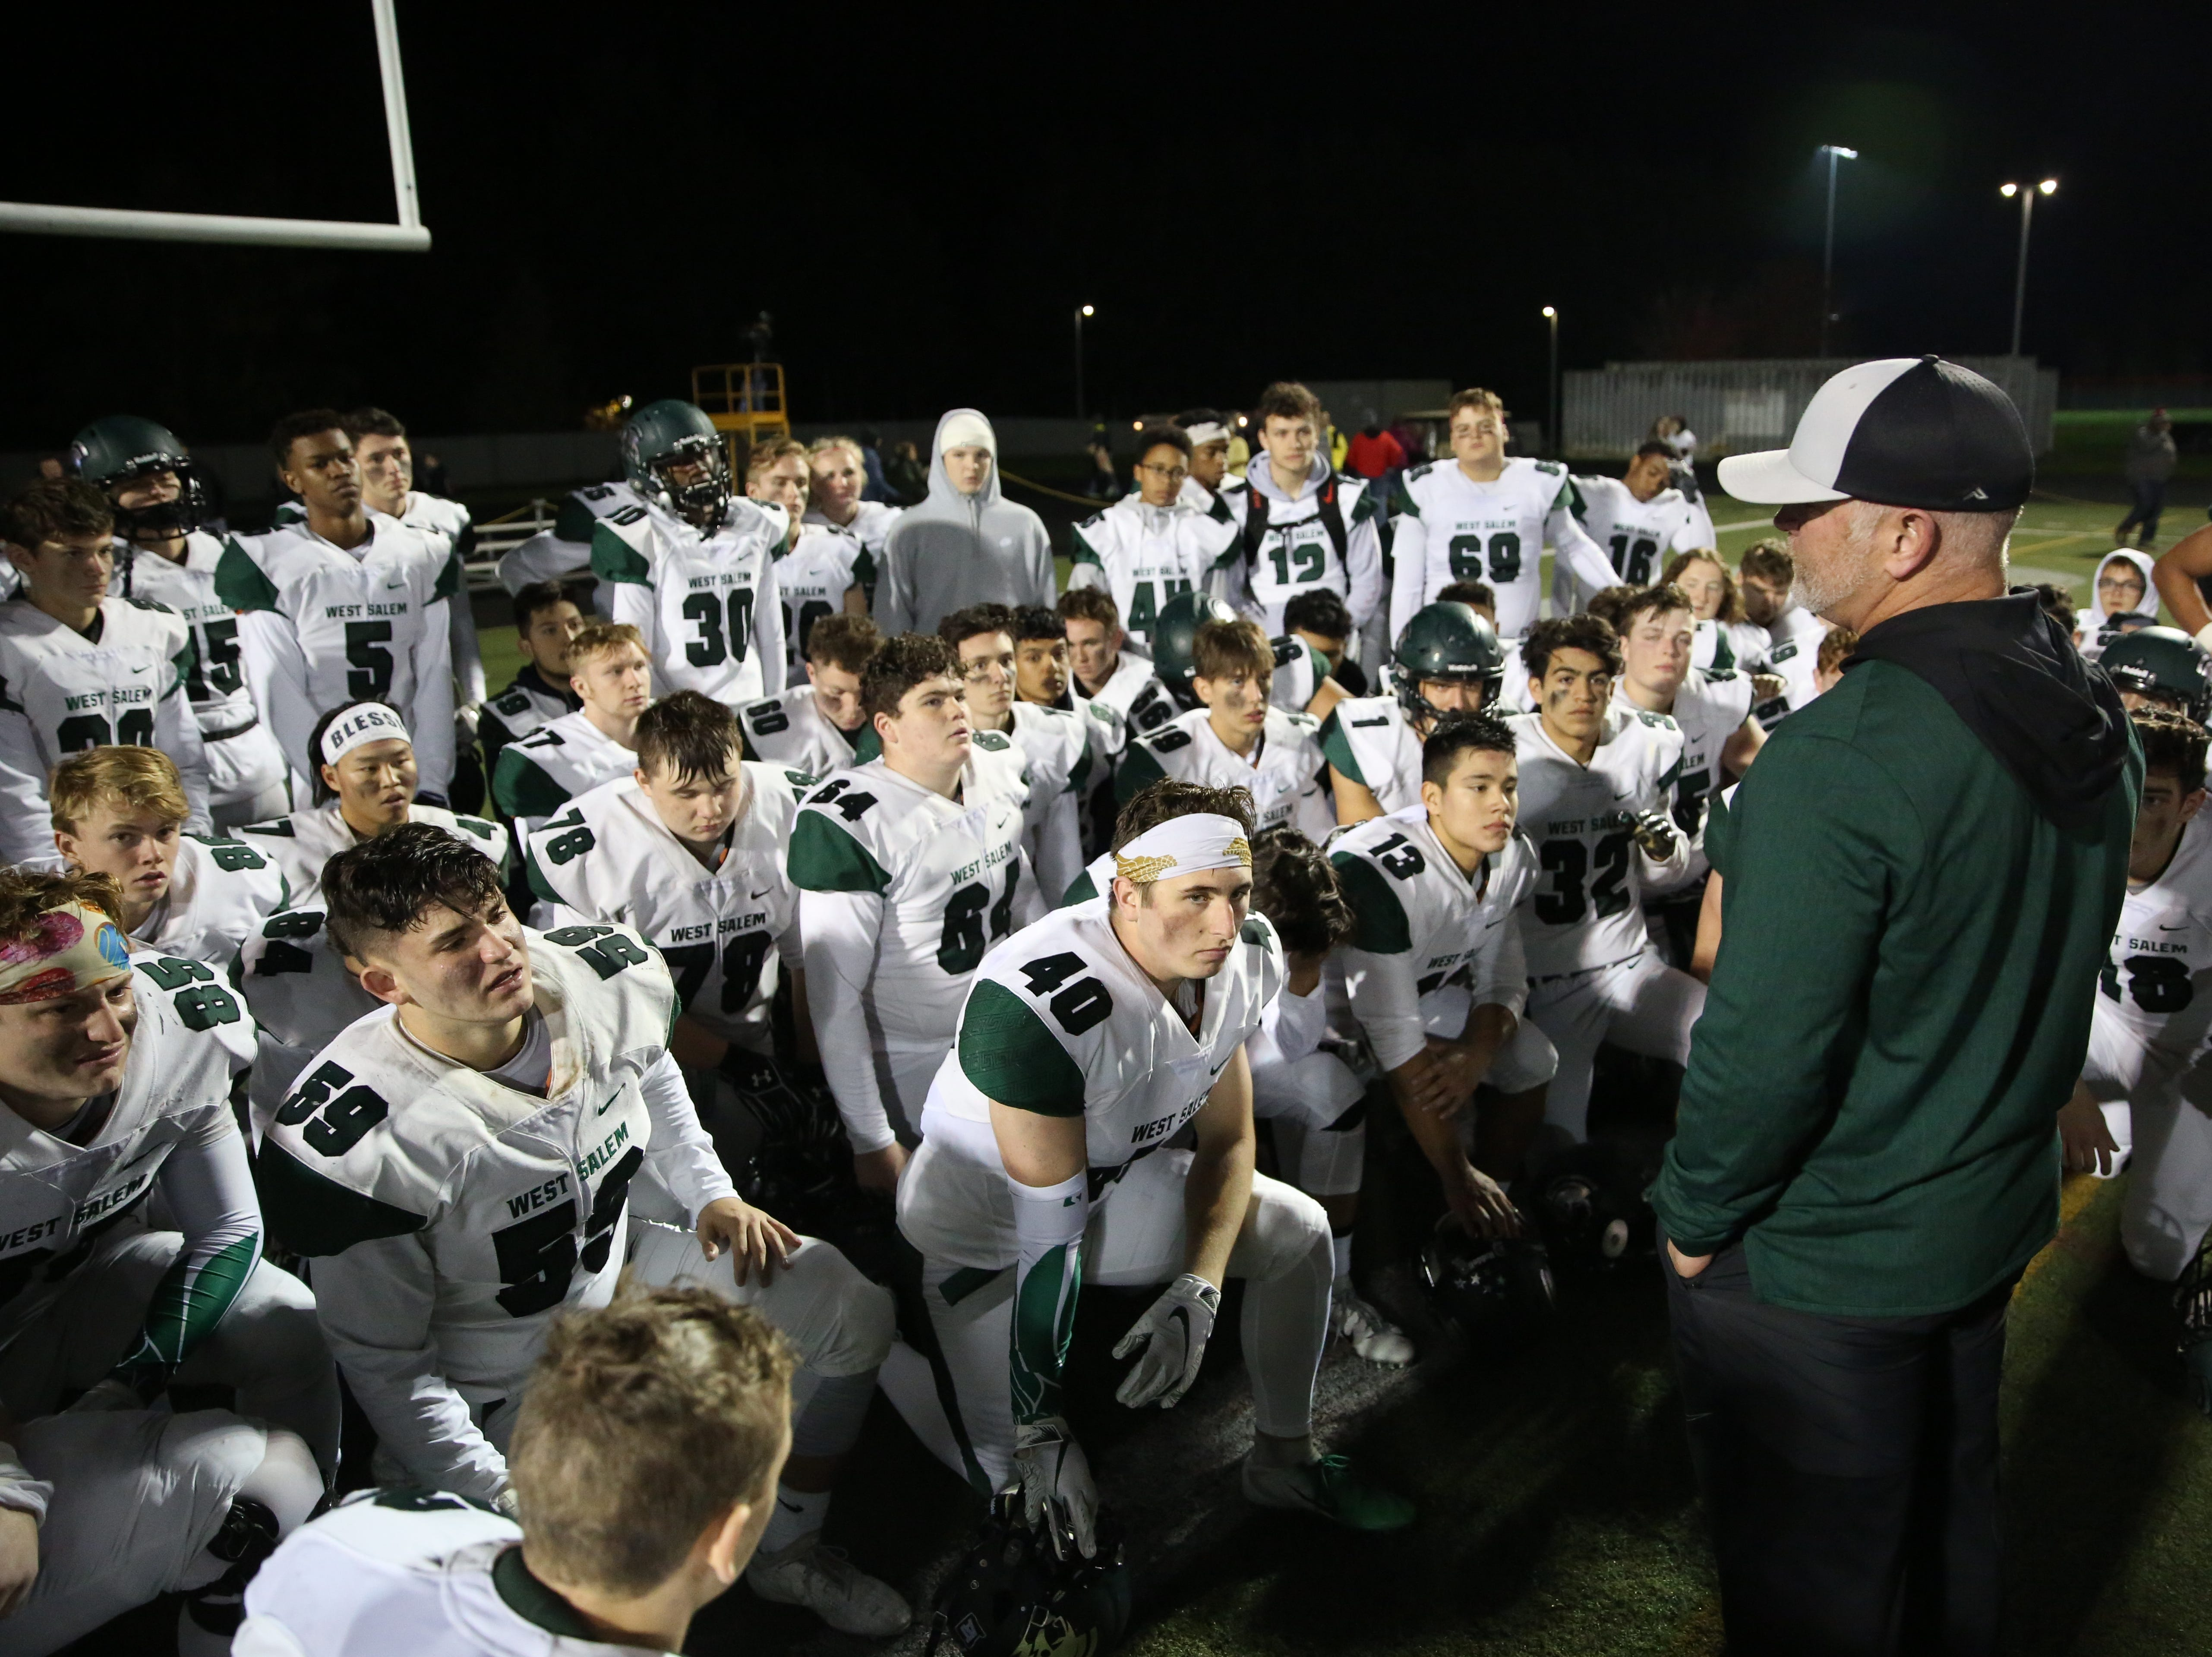 West Salem pushes champs in close playoff defeat